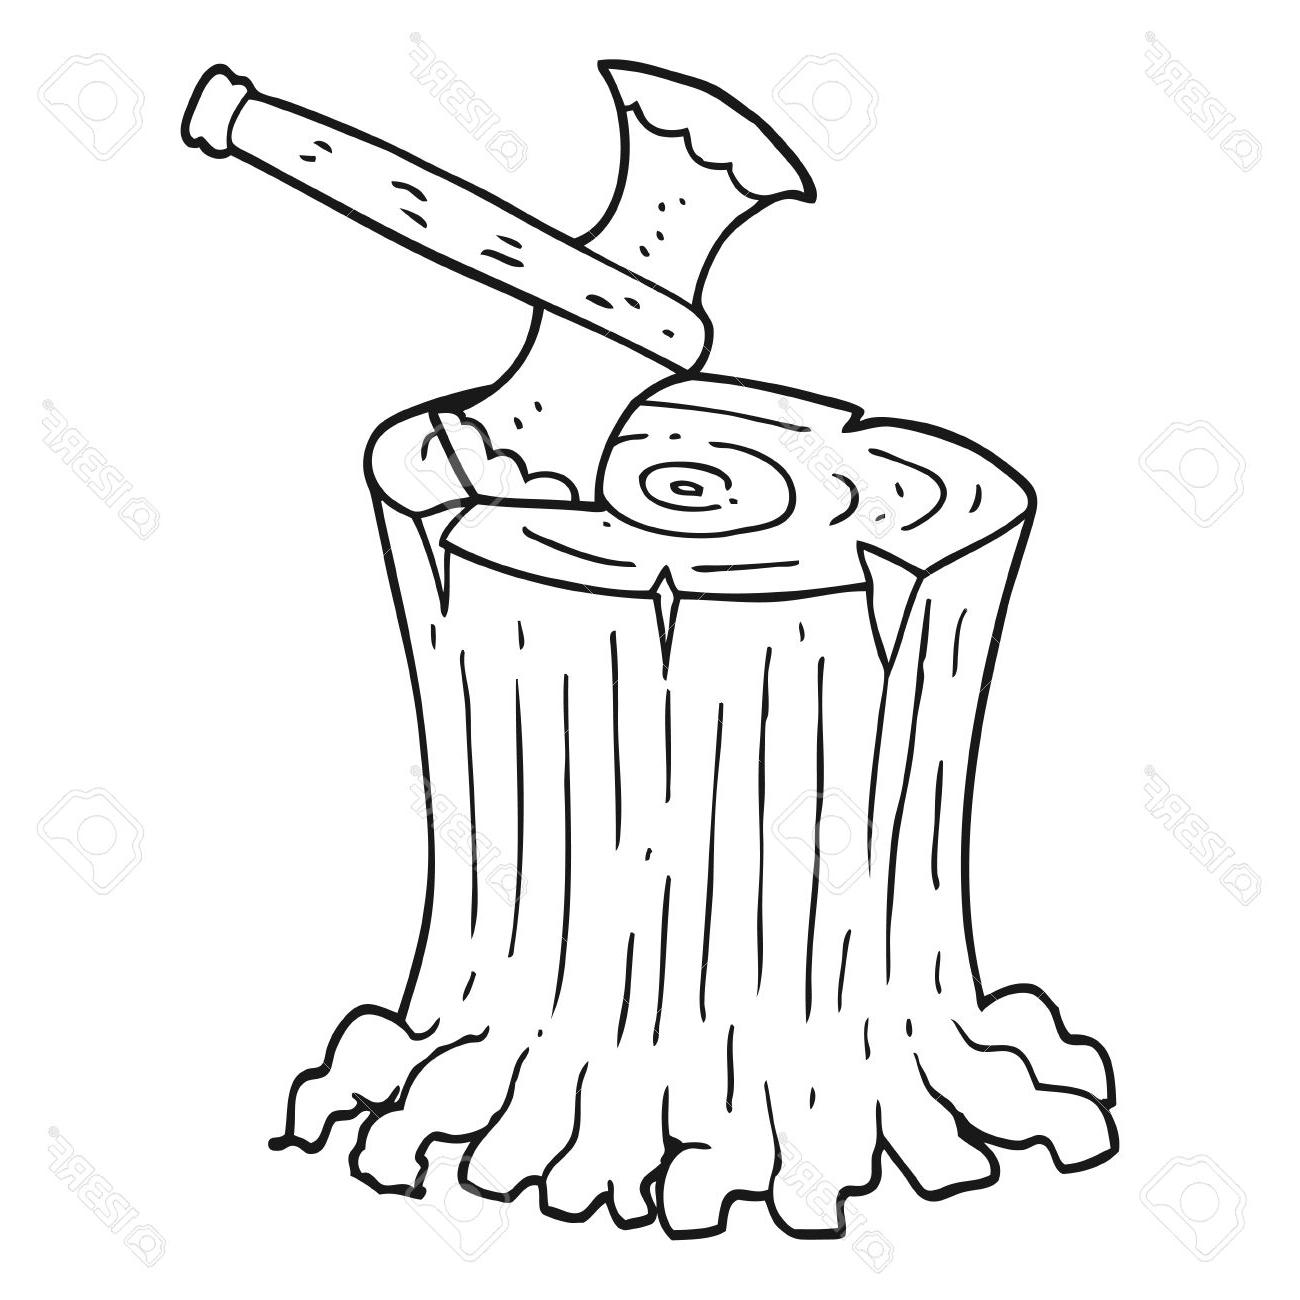 1300x1300 Best 15 Freehand Drawn Black And White Cartoon Axe In Tree Stump